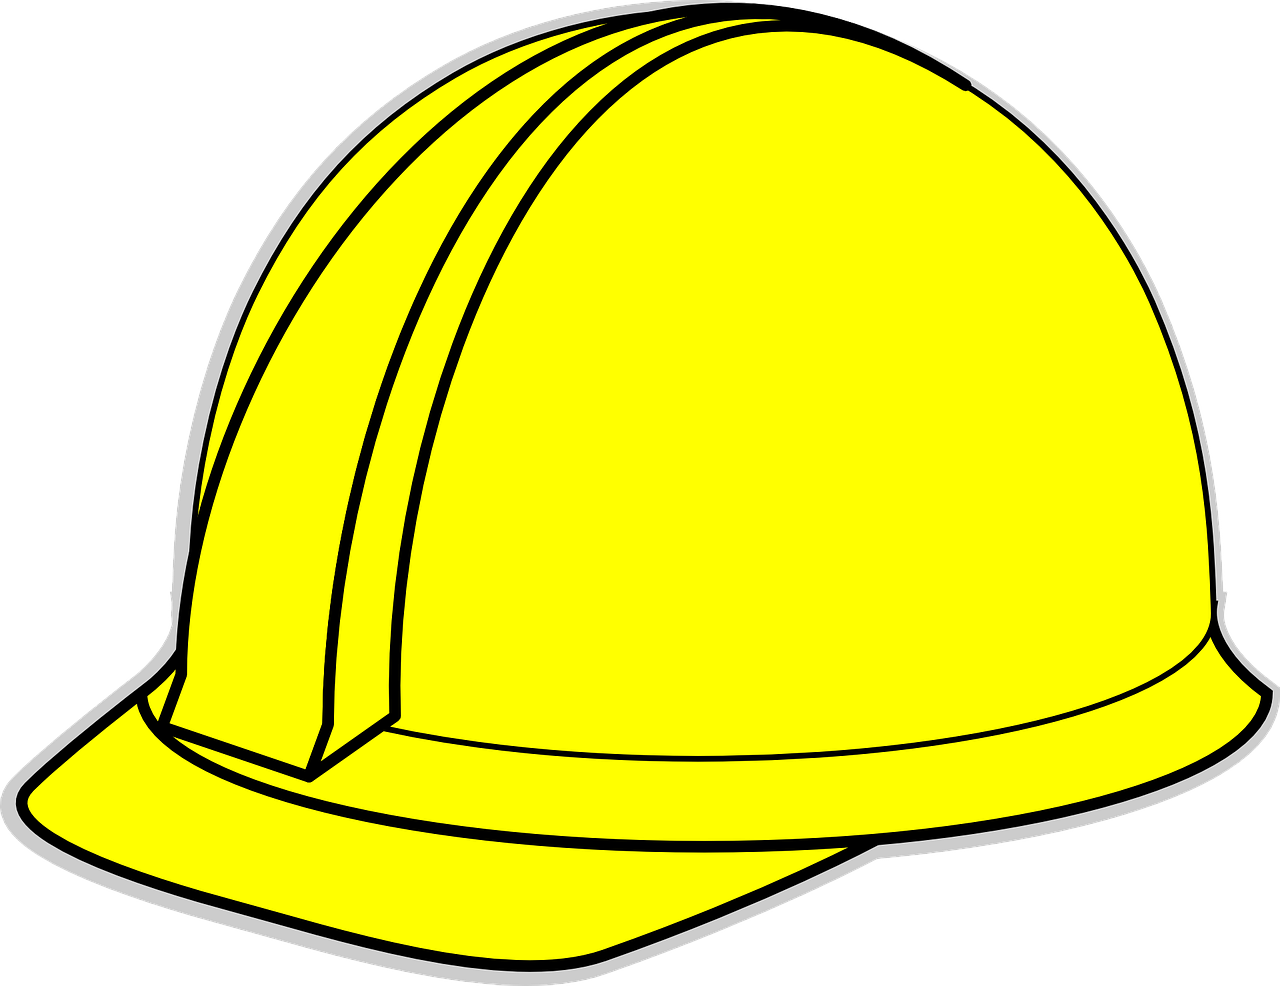 H o investments water. Man clipart hard hat